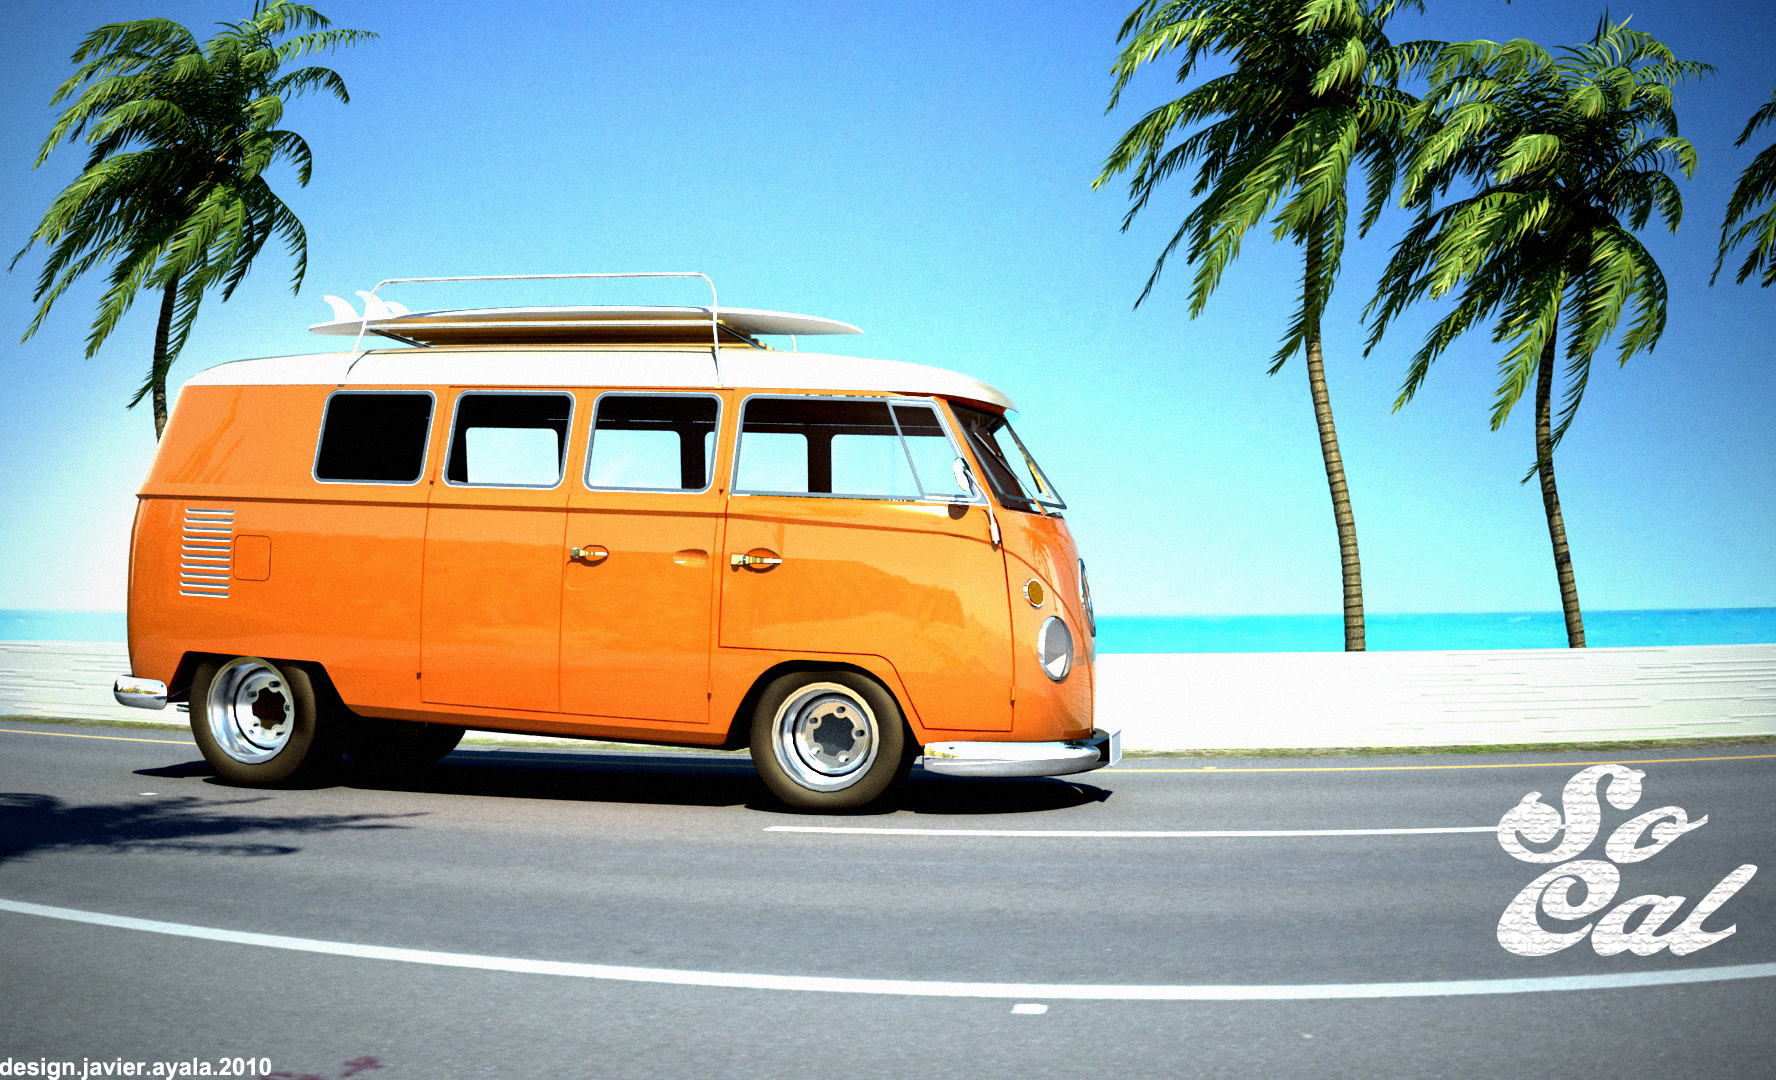 volkswagen kombi wallpaper many hd wallpaper. Black Bedroom Furniture Sets. Home Design Ideas